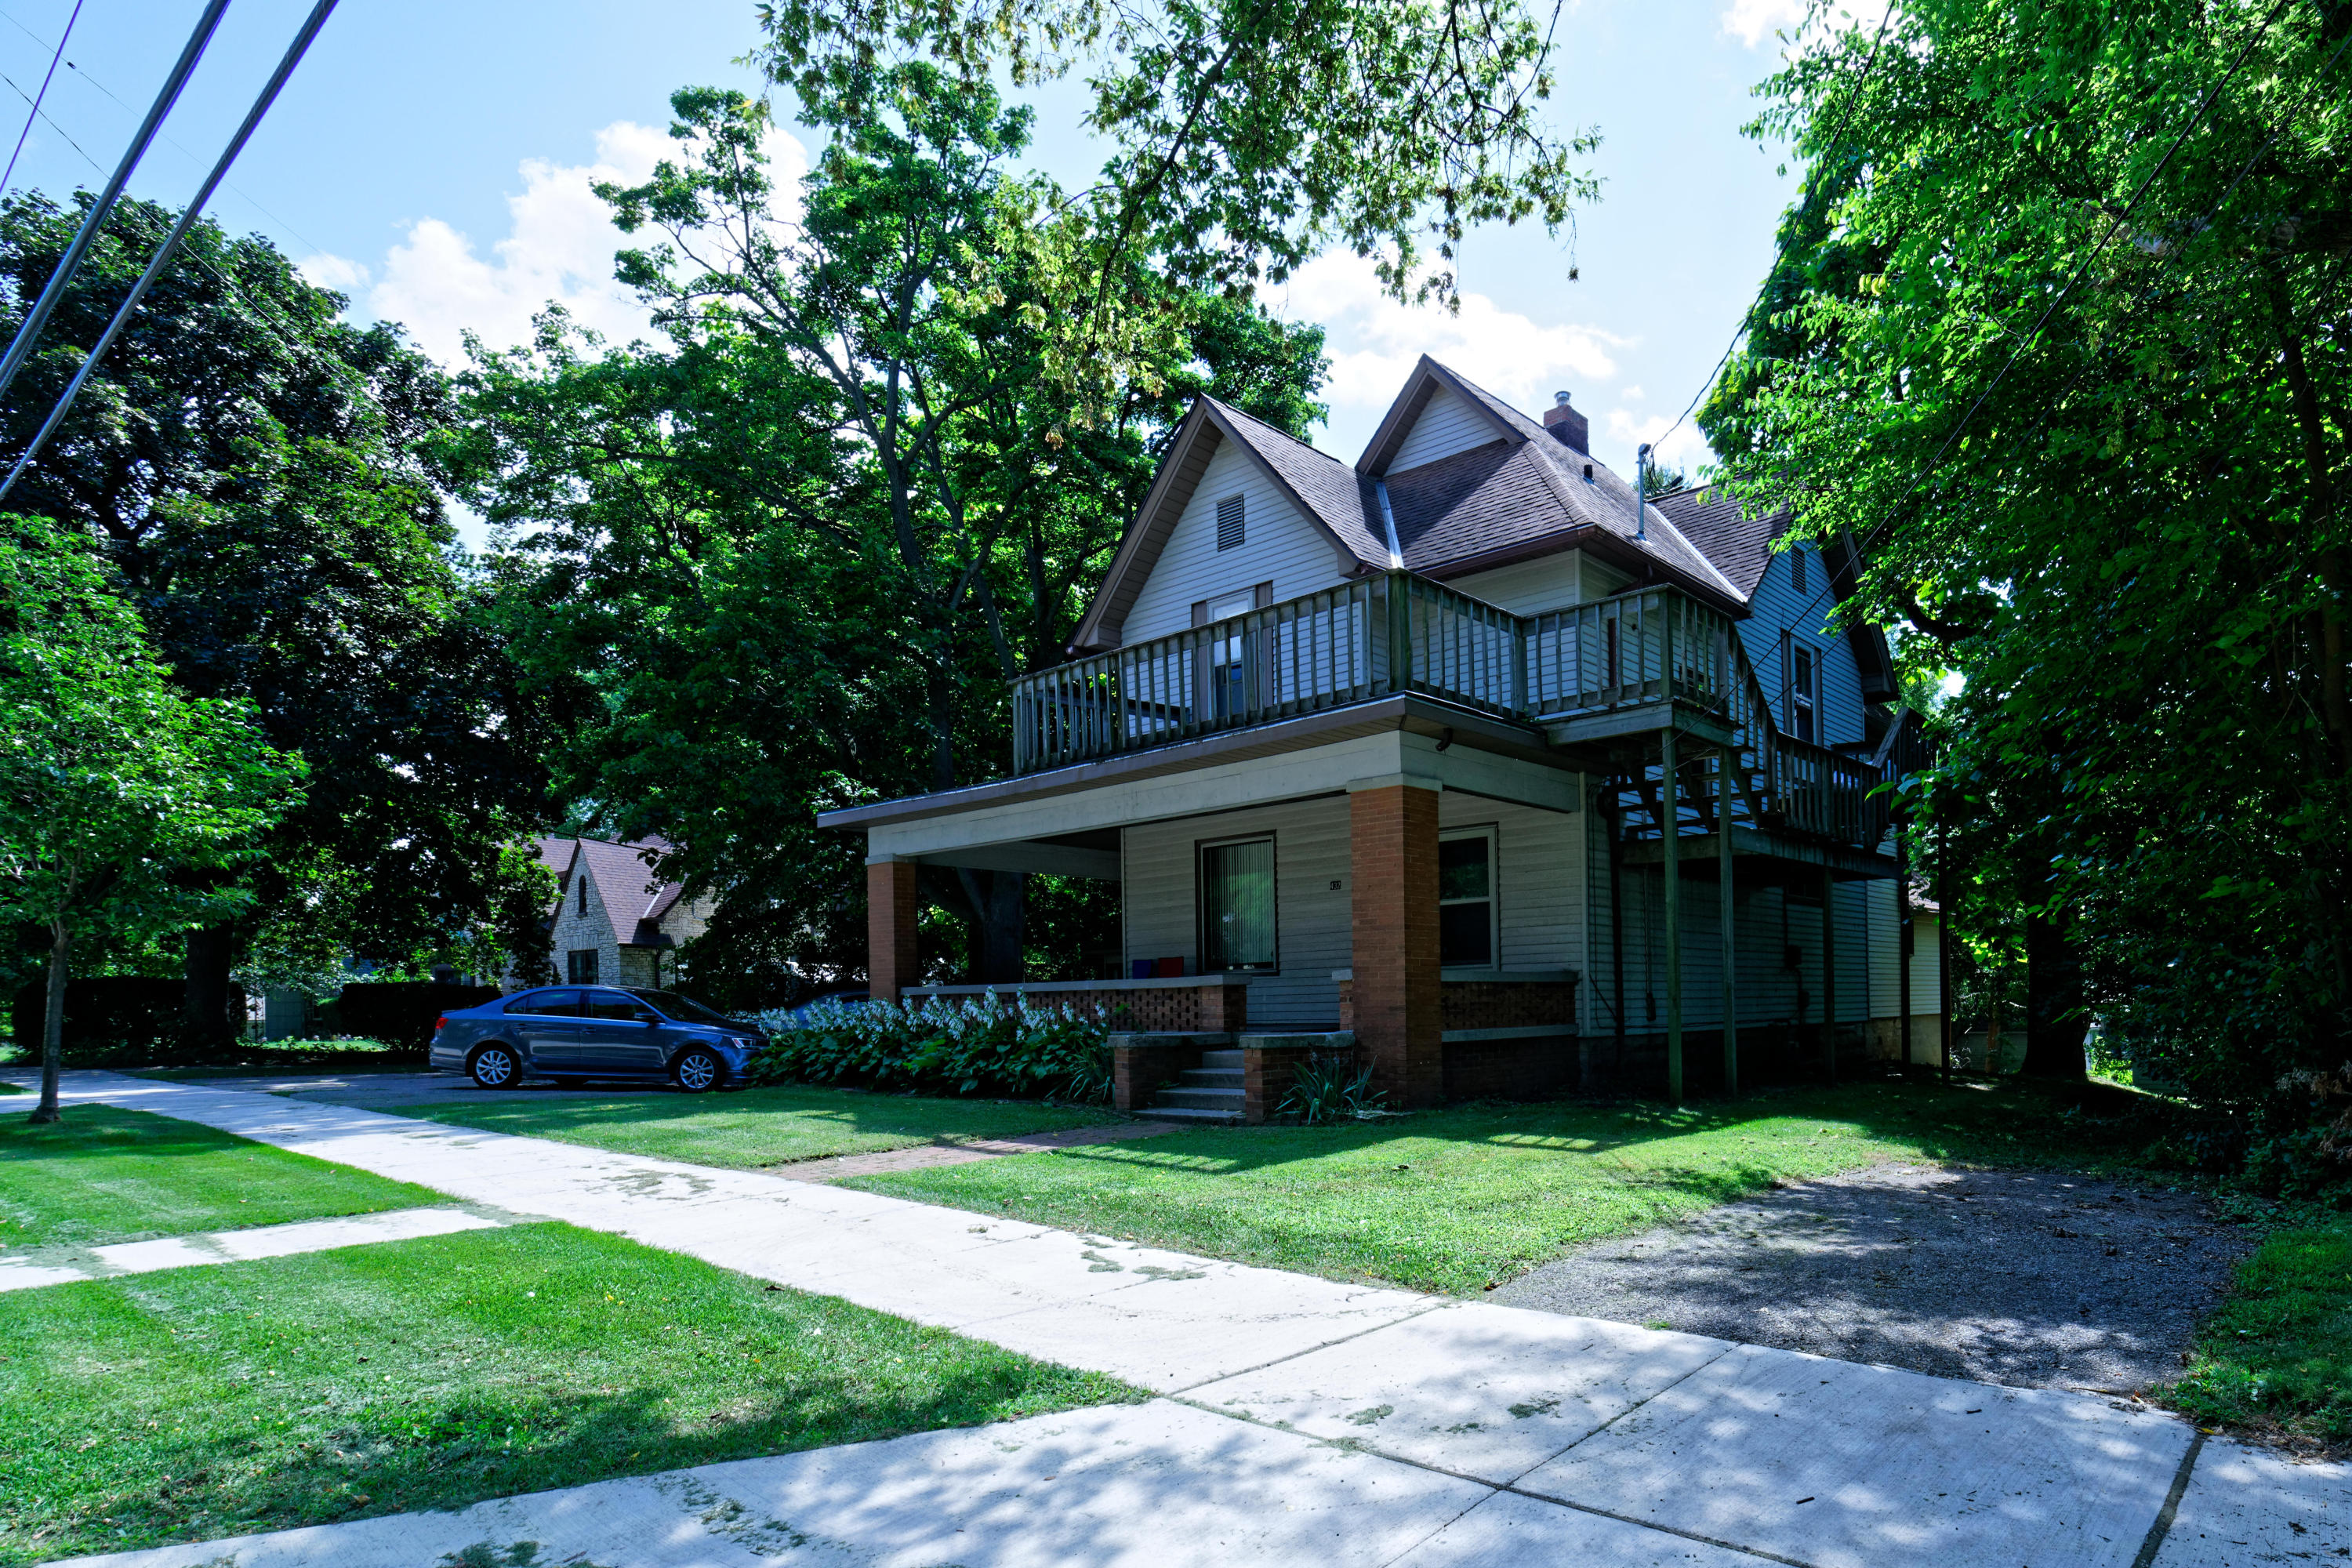 432 Barstow St NW, Waukesha, Wisconsin 53188, ,Multi-Family Investment,For Sale,Barstow St NW,1602469